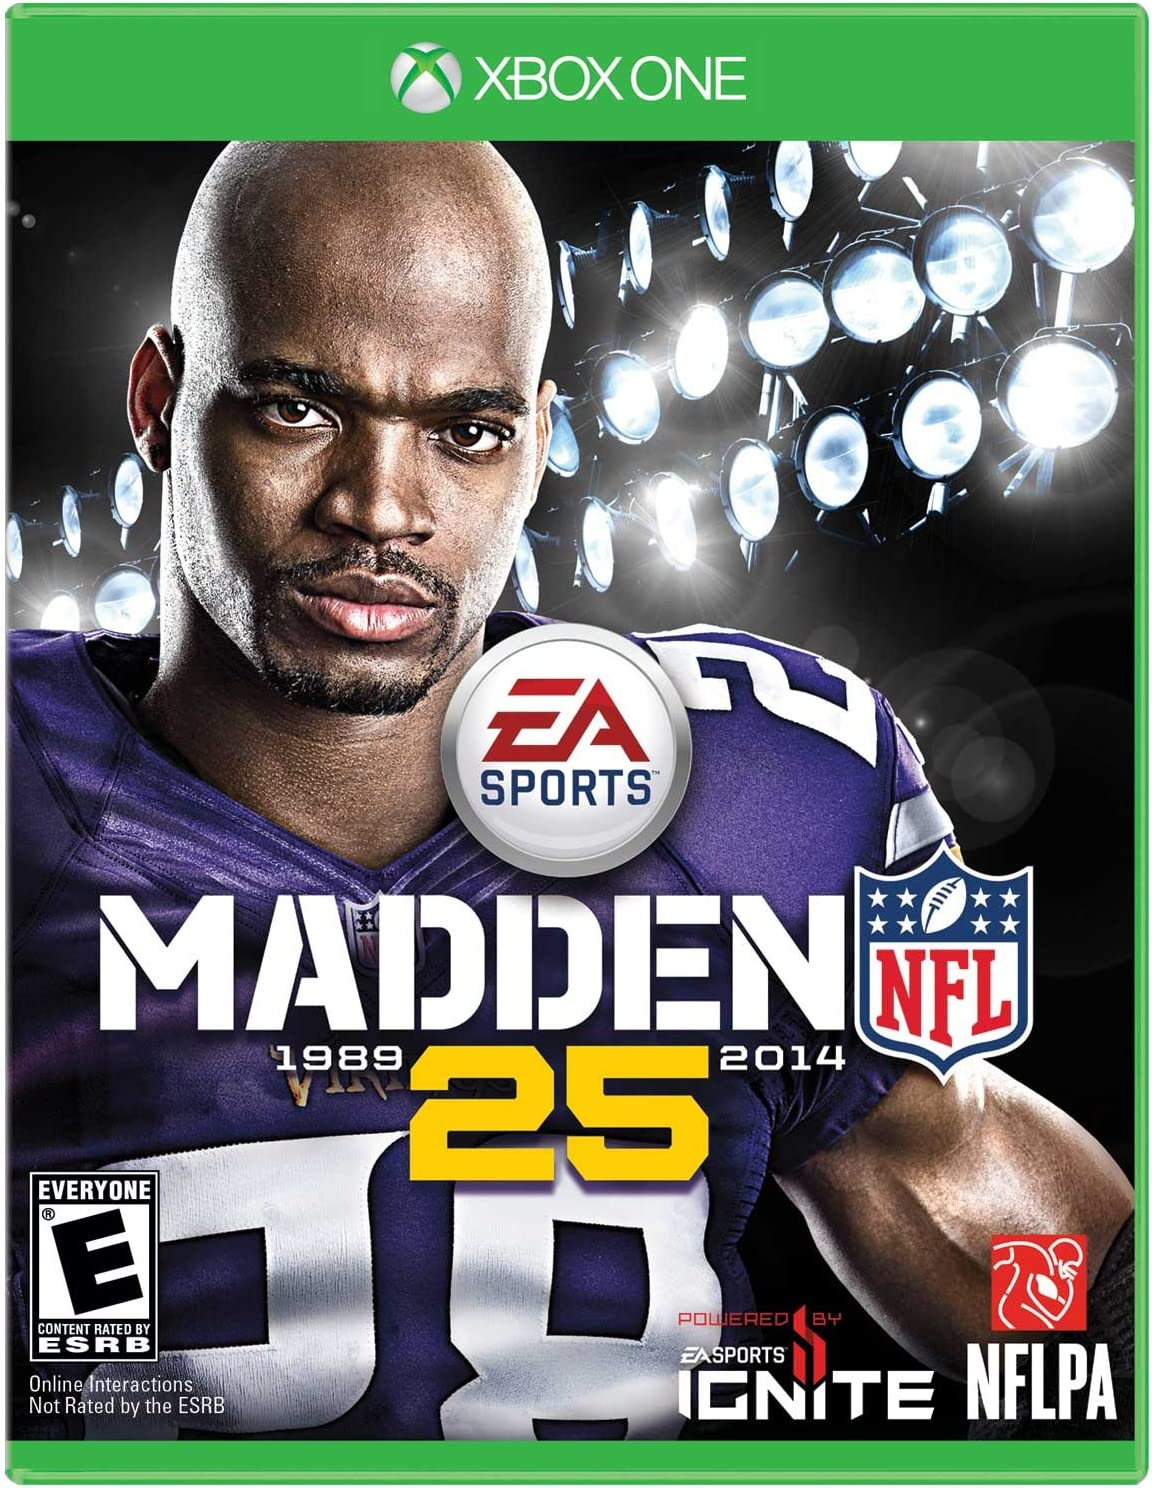 25th anniversary madden